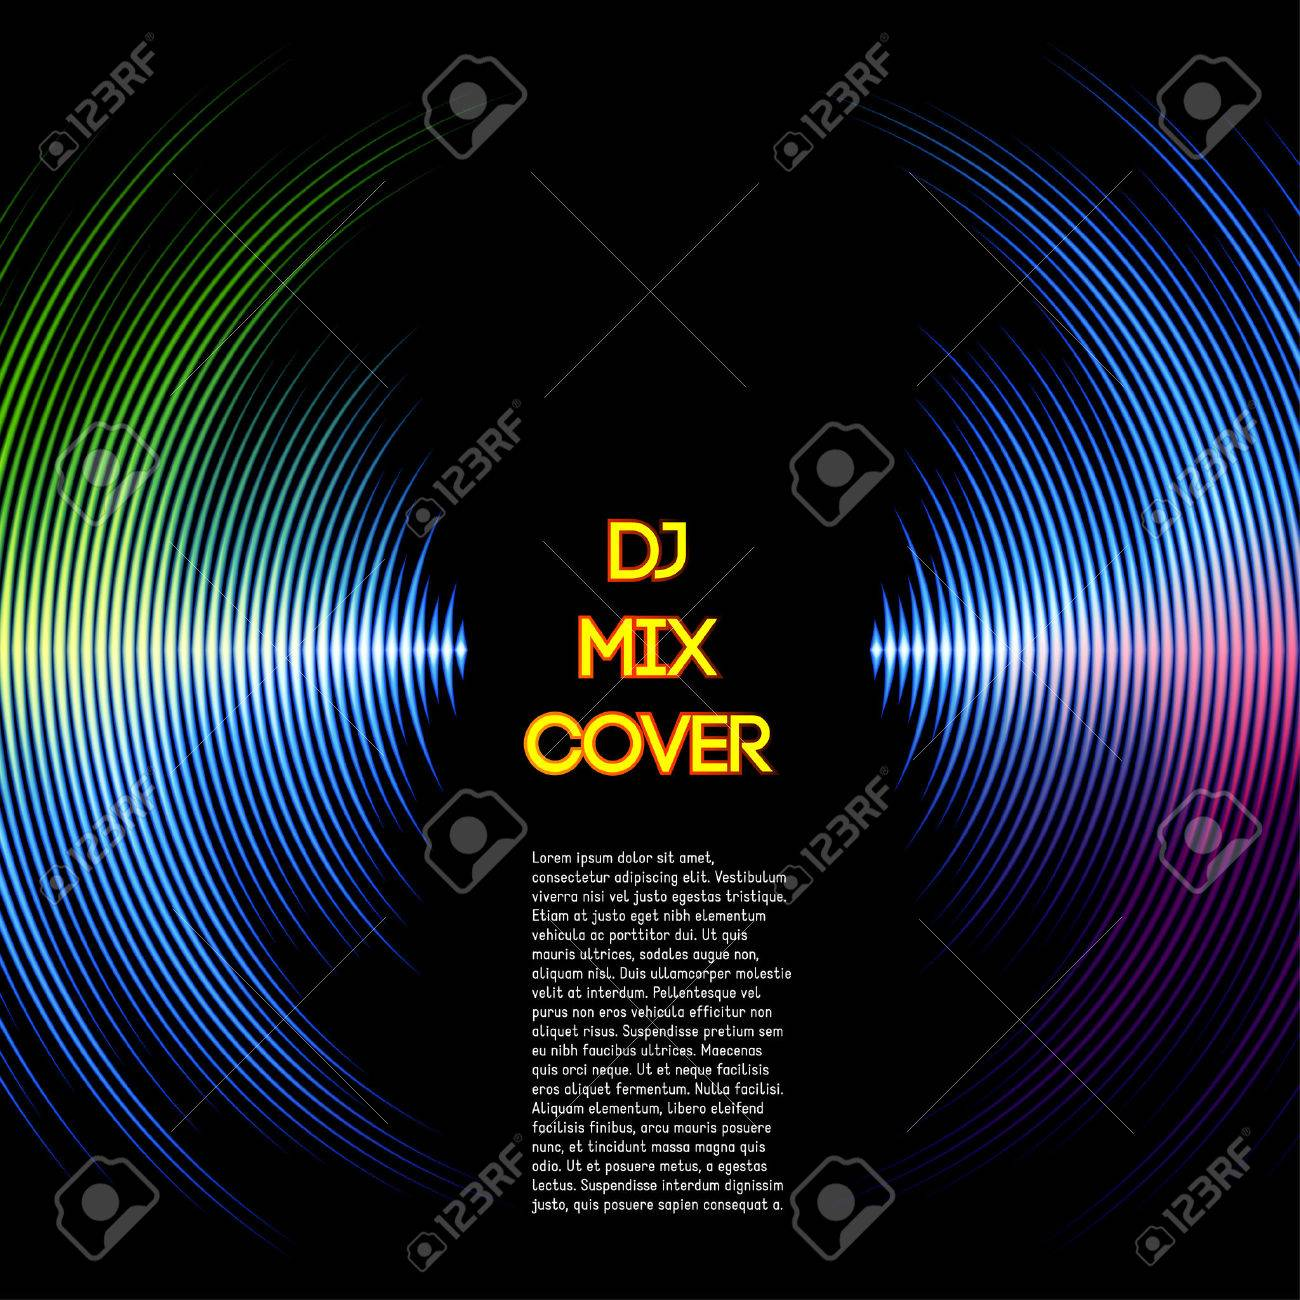 DJ mix cover with music waveform as a vinyl grooves - 33302494